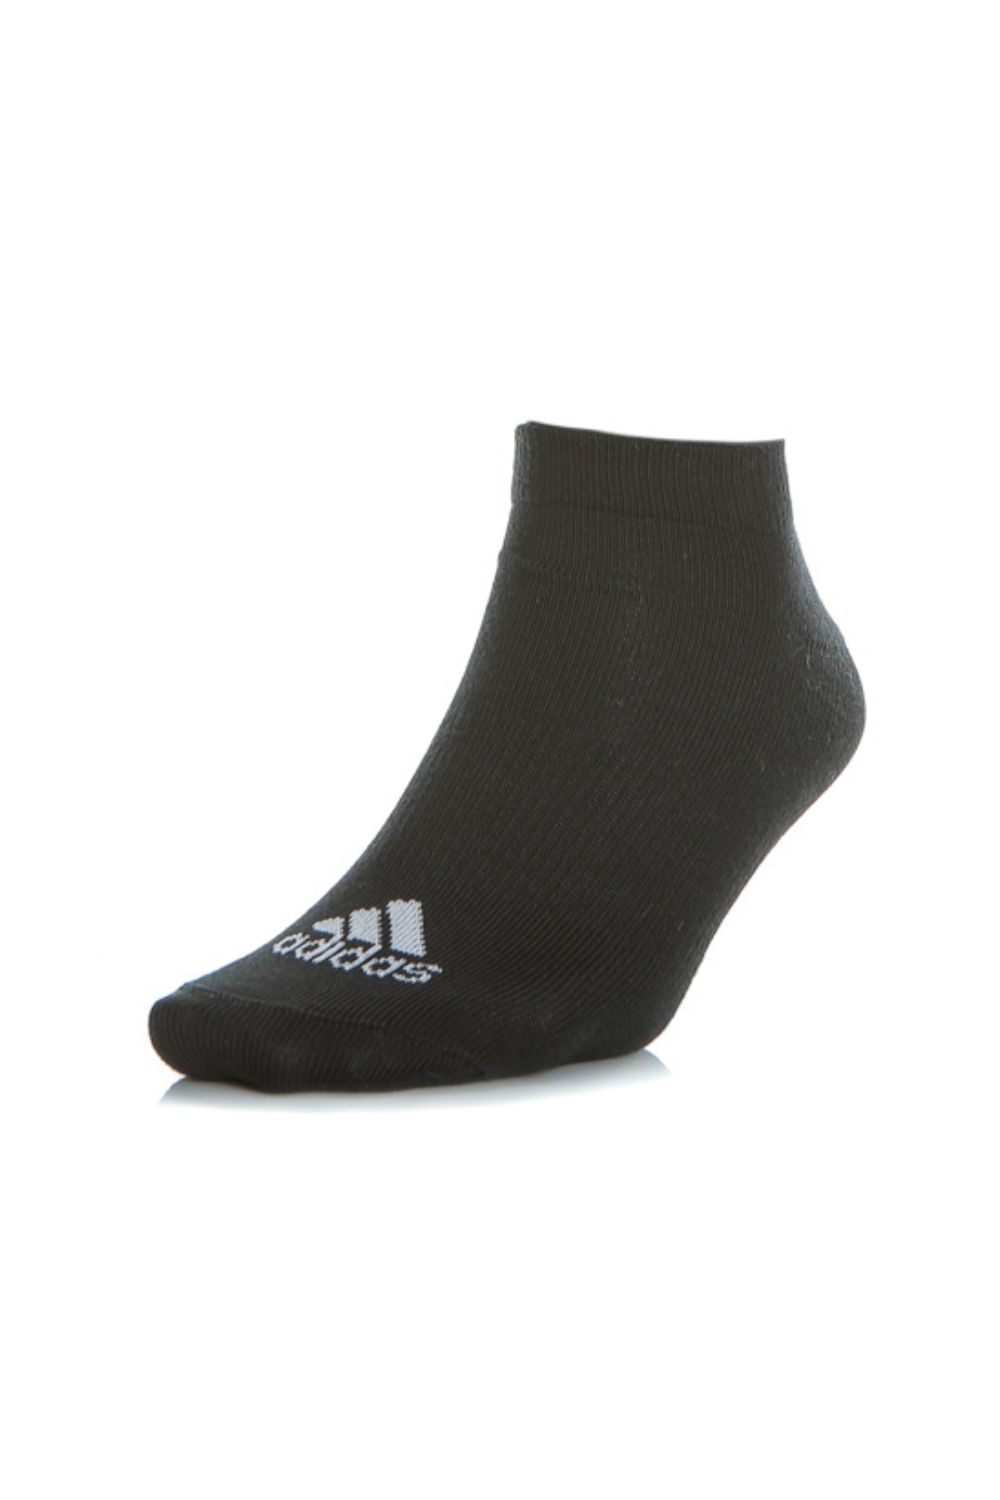 adidas Performance - Unisex κάλτσες adidas Performance No-Show Thin Socks μαύρες